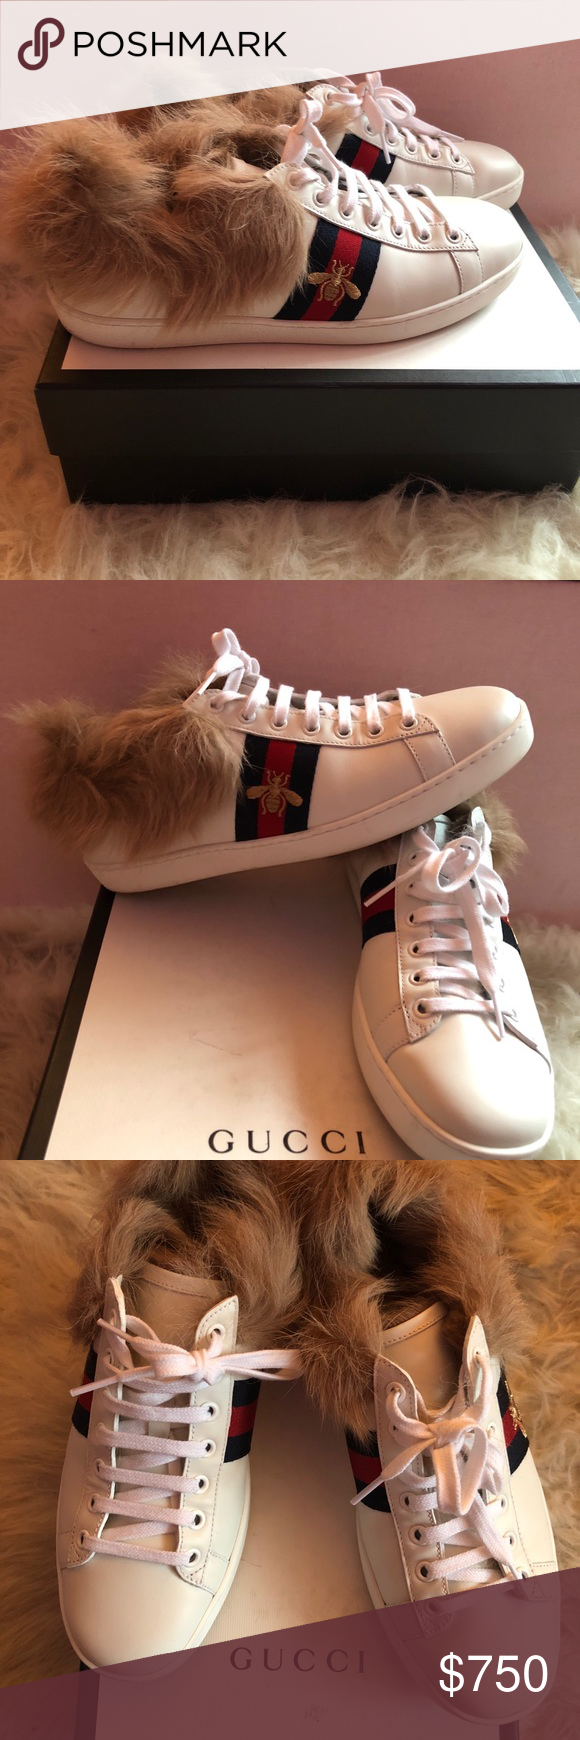 469f54d8a Brand NEW Gucci Ace leather & lamb fur sneaker Authentic Gucci sneakers  with box True to size Real lamb fur lining EU size 39 / US 8 Gucci Shoes  Sneakers